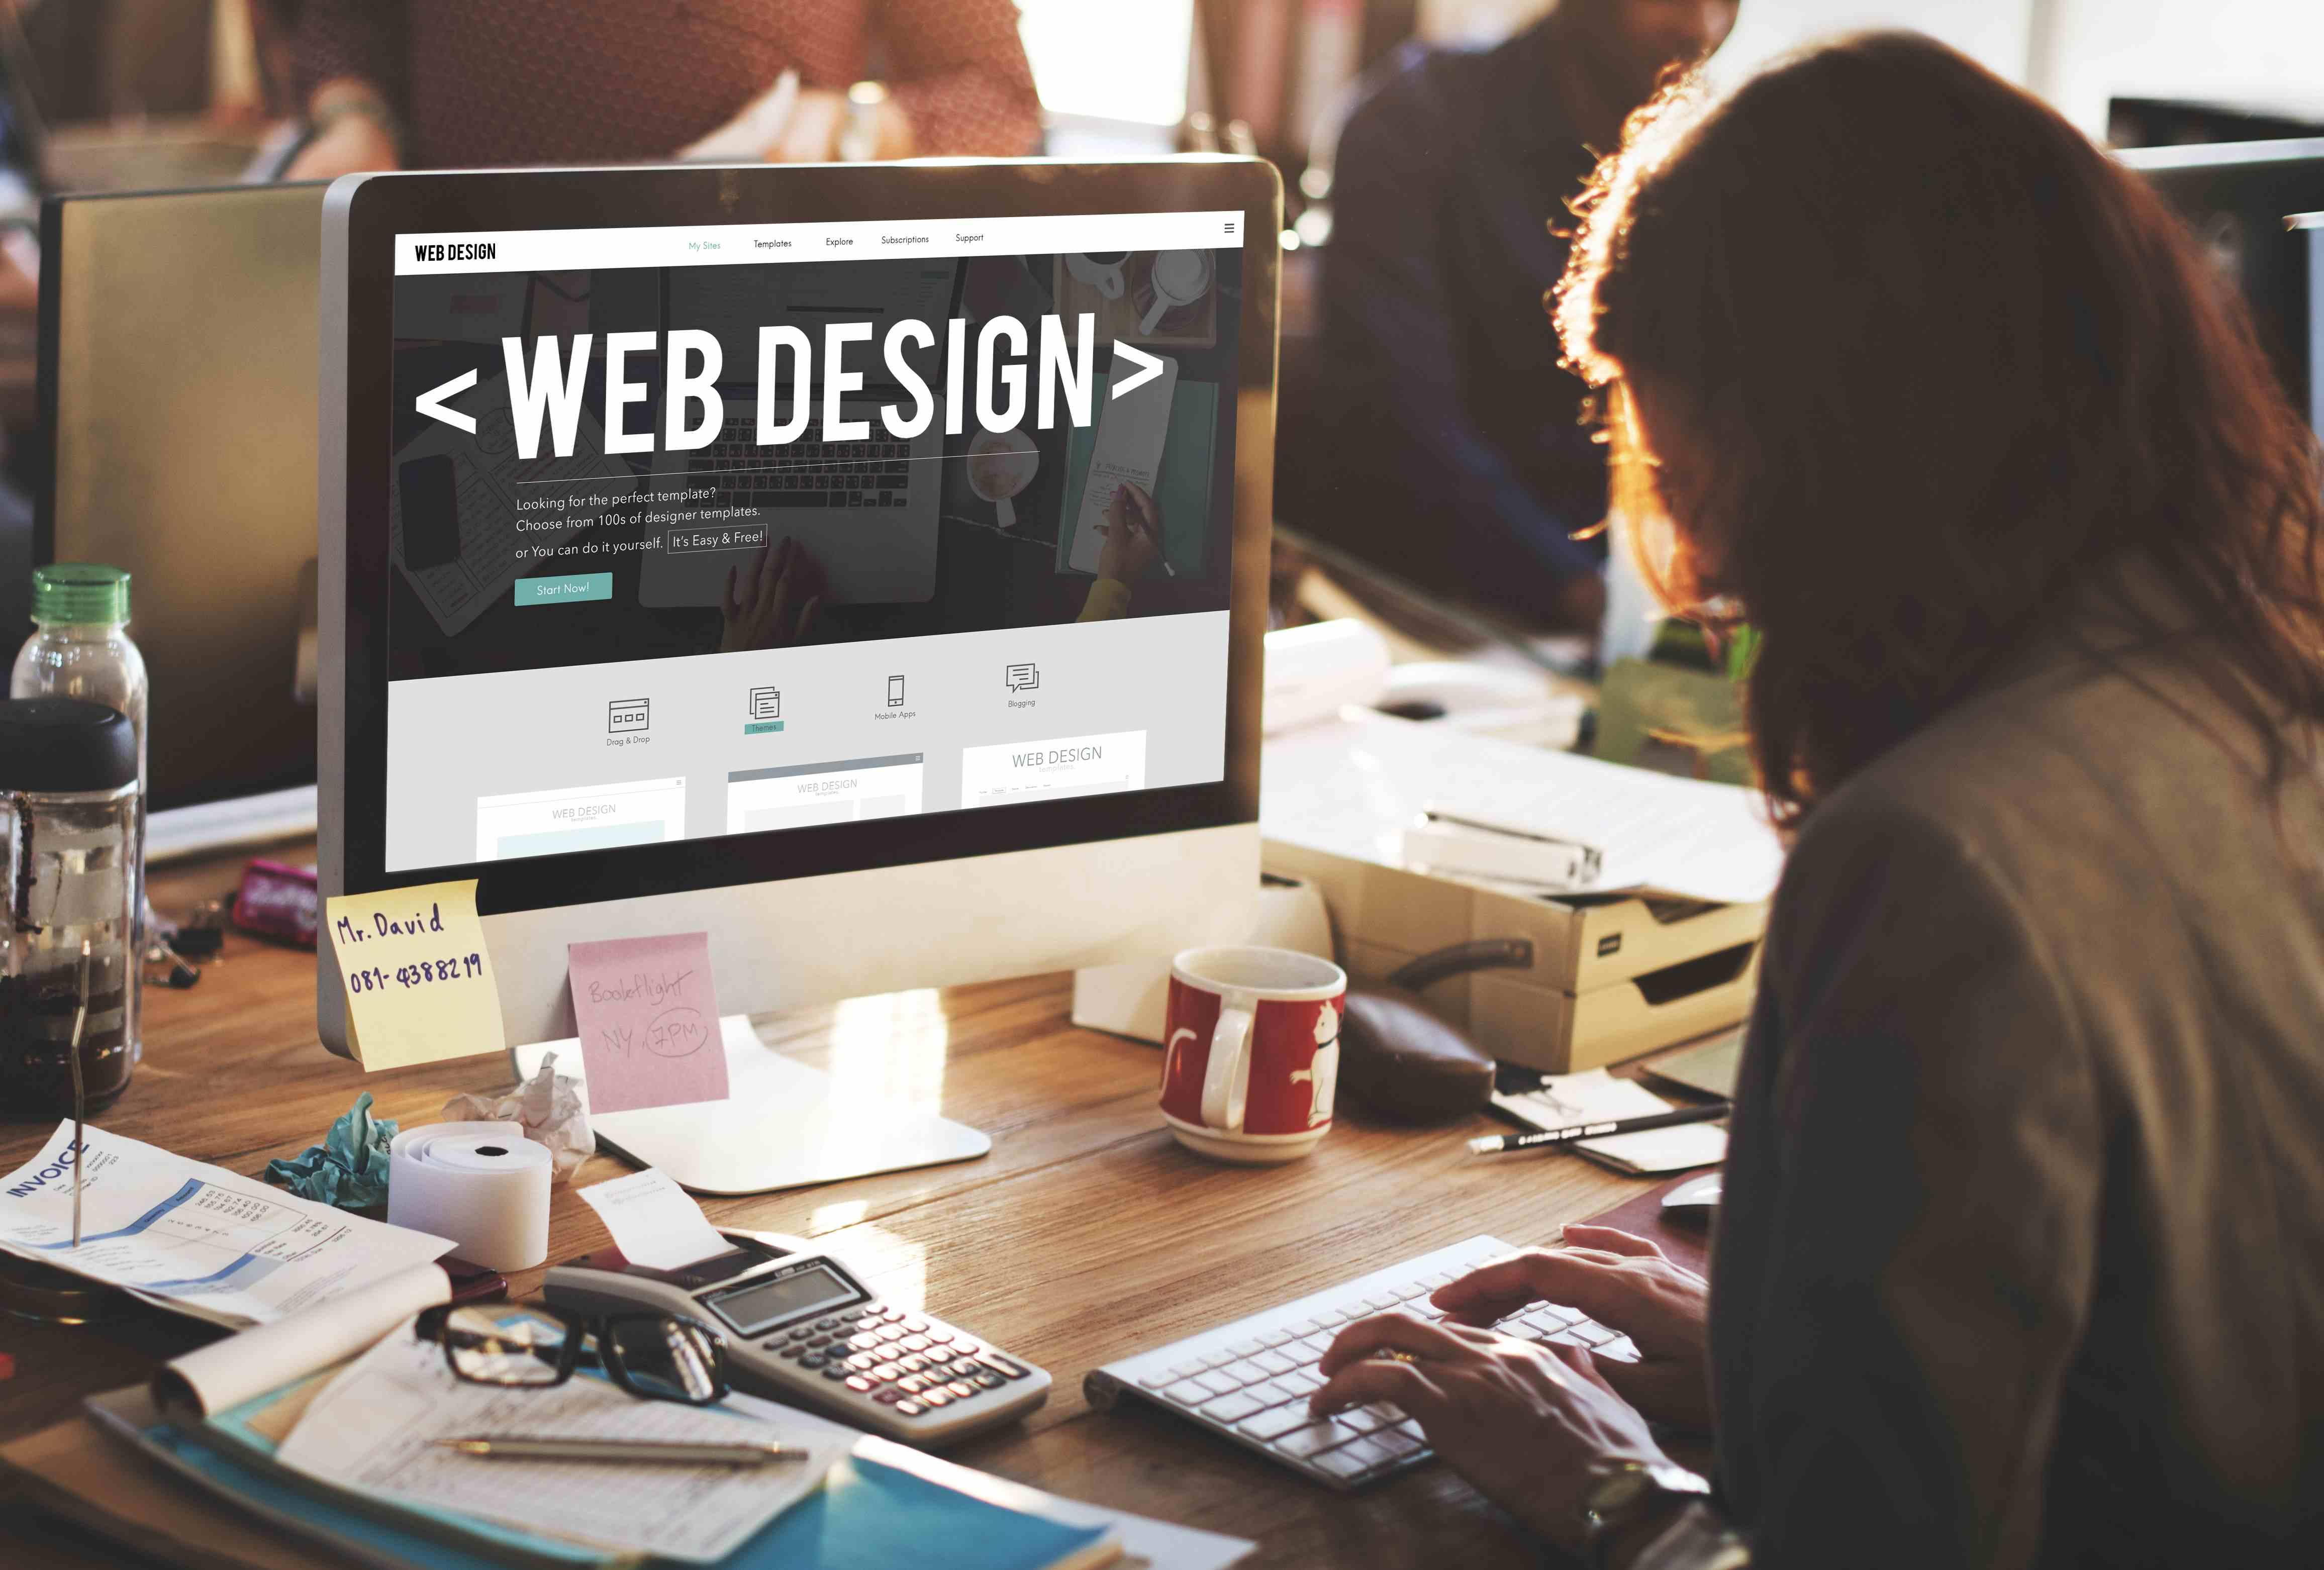 Excellent-Web-Design-Within-Your-Budget-at-Proweaver-compressor